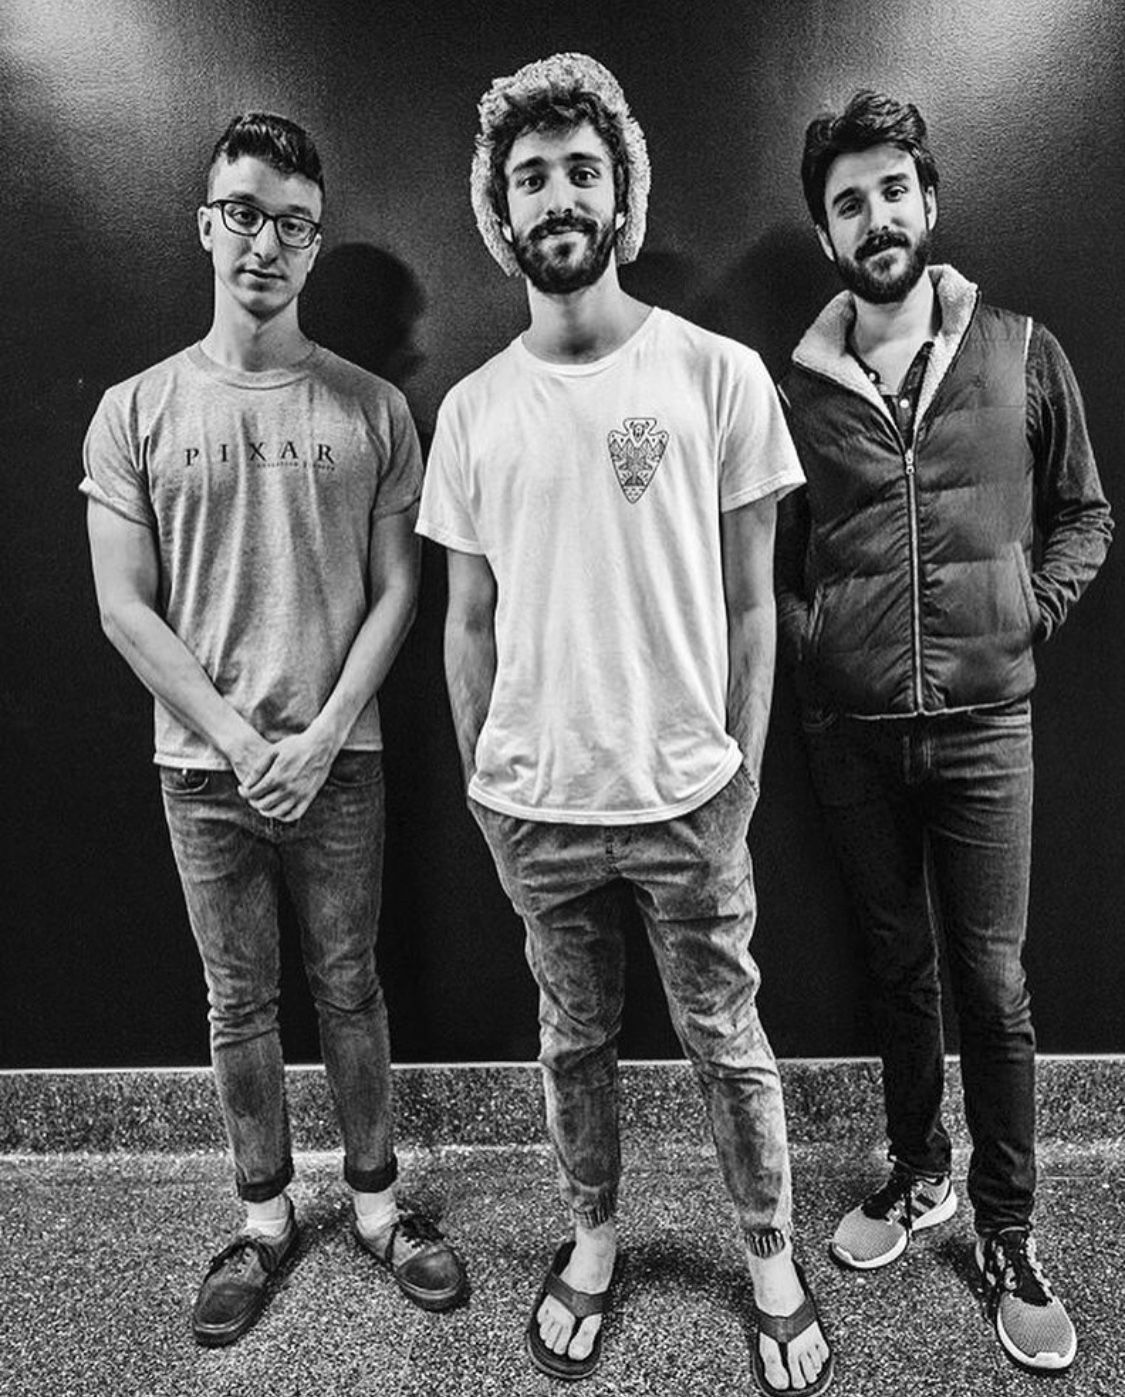 Ajr brothers | Ajr in 2019 | Music artists, Band wallpapers